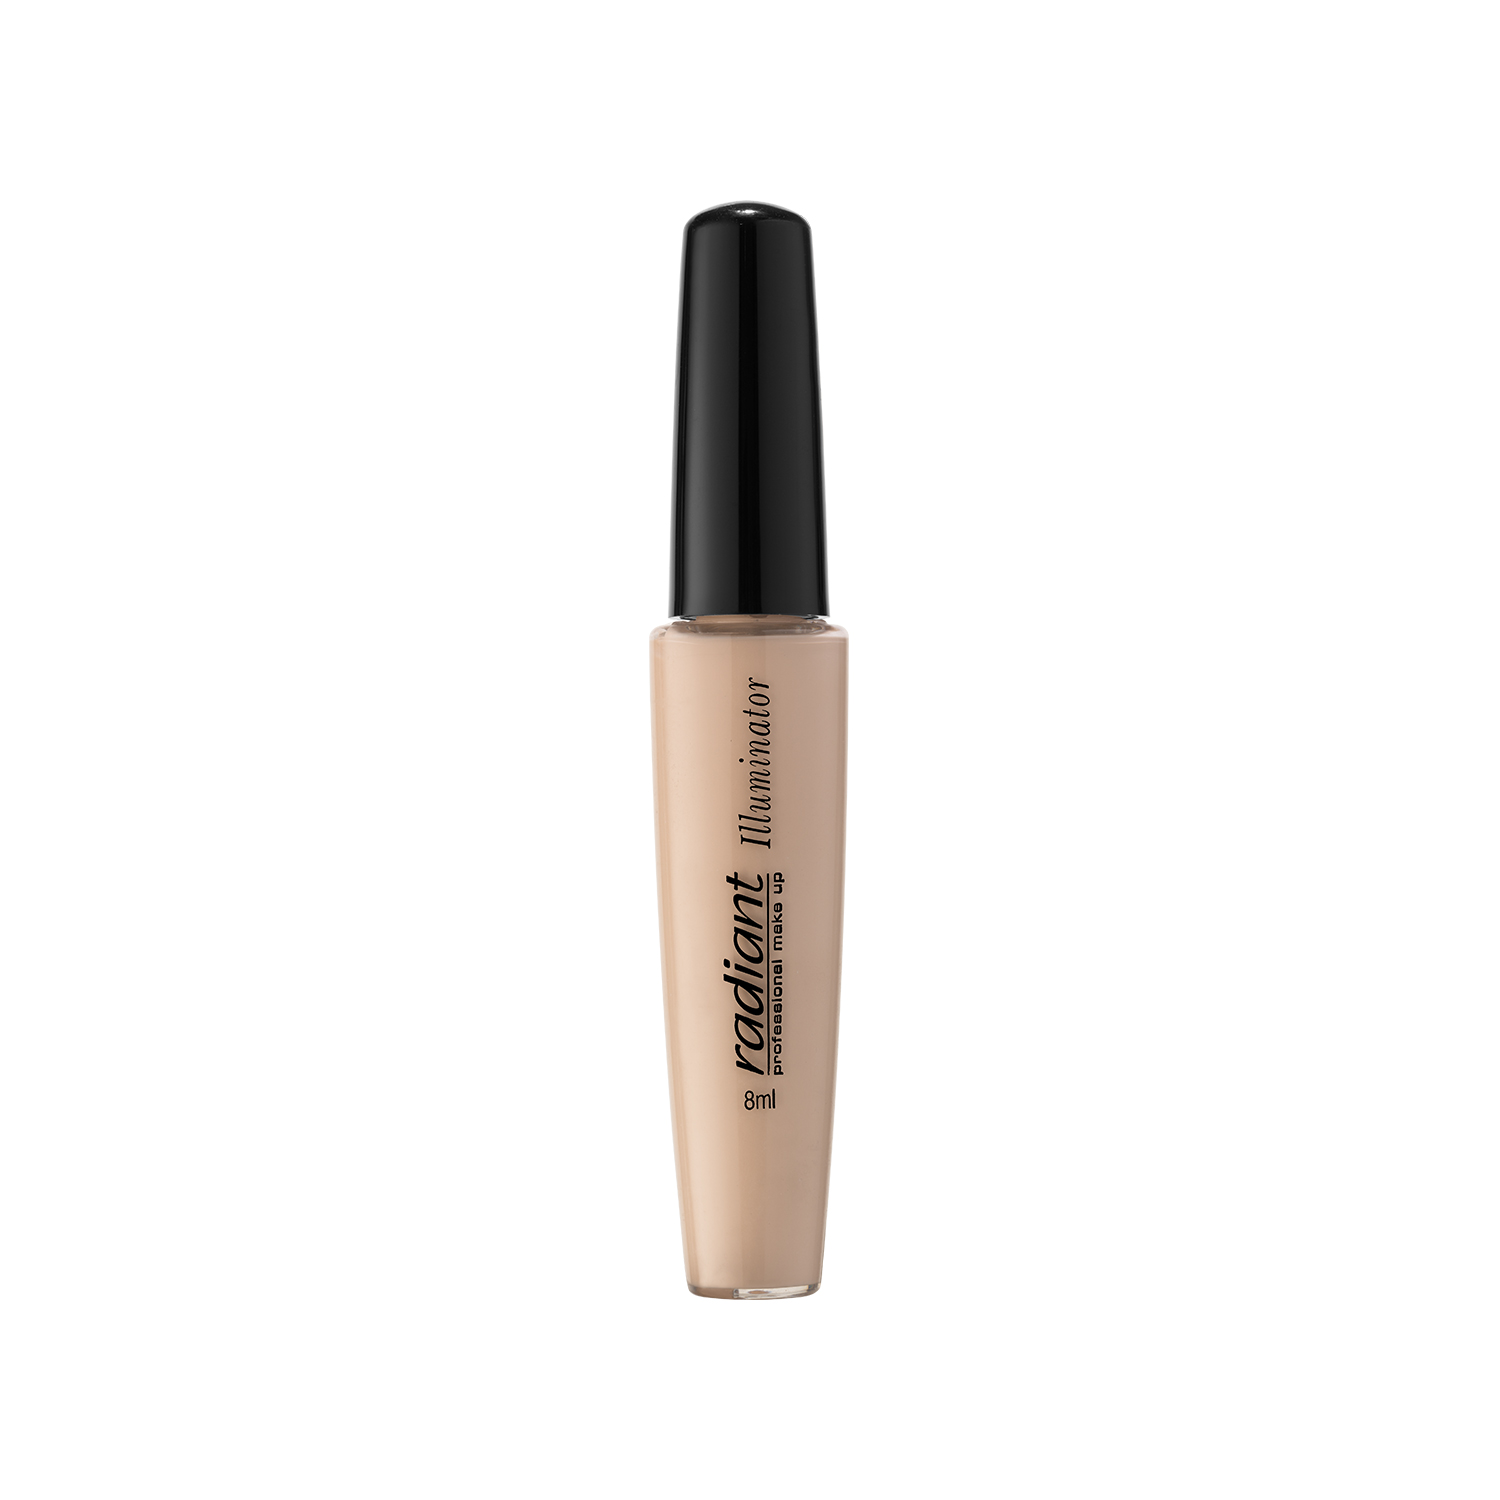 ILLUMINATOR CONCEALER (02 Neutral)